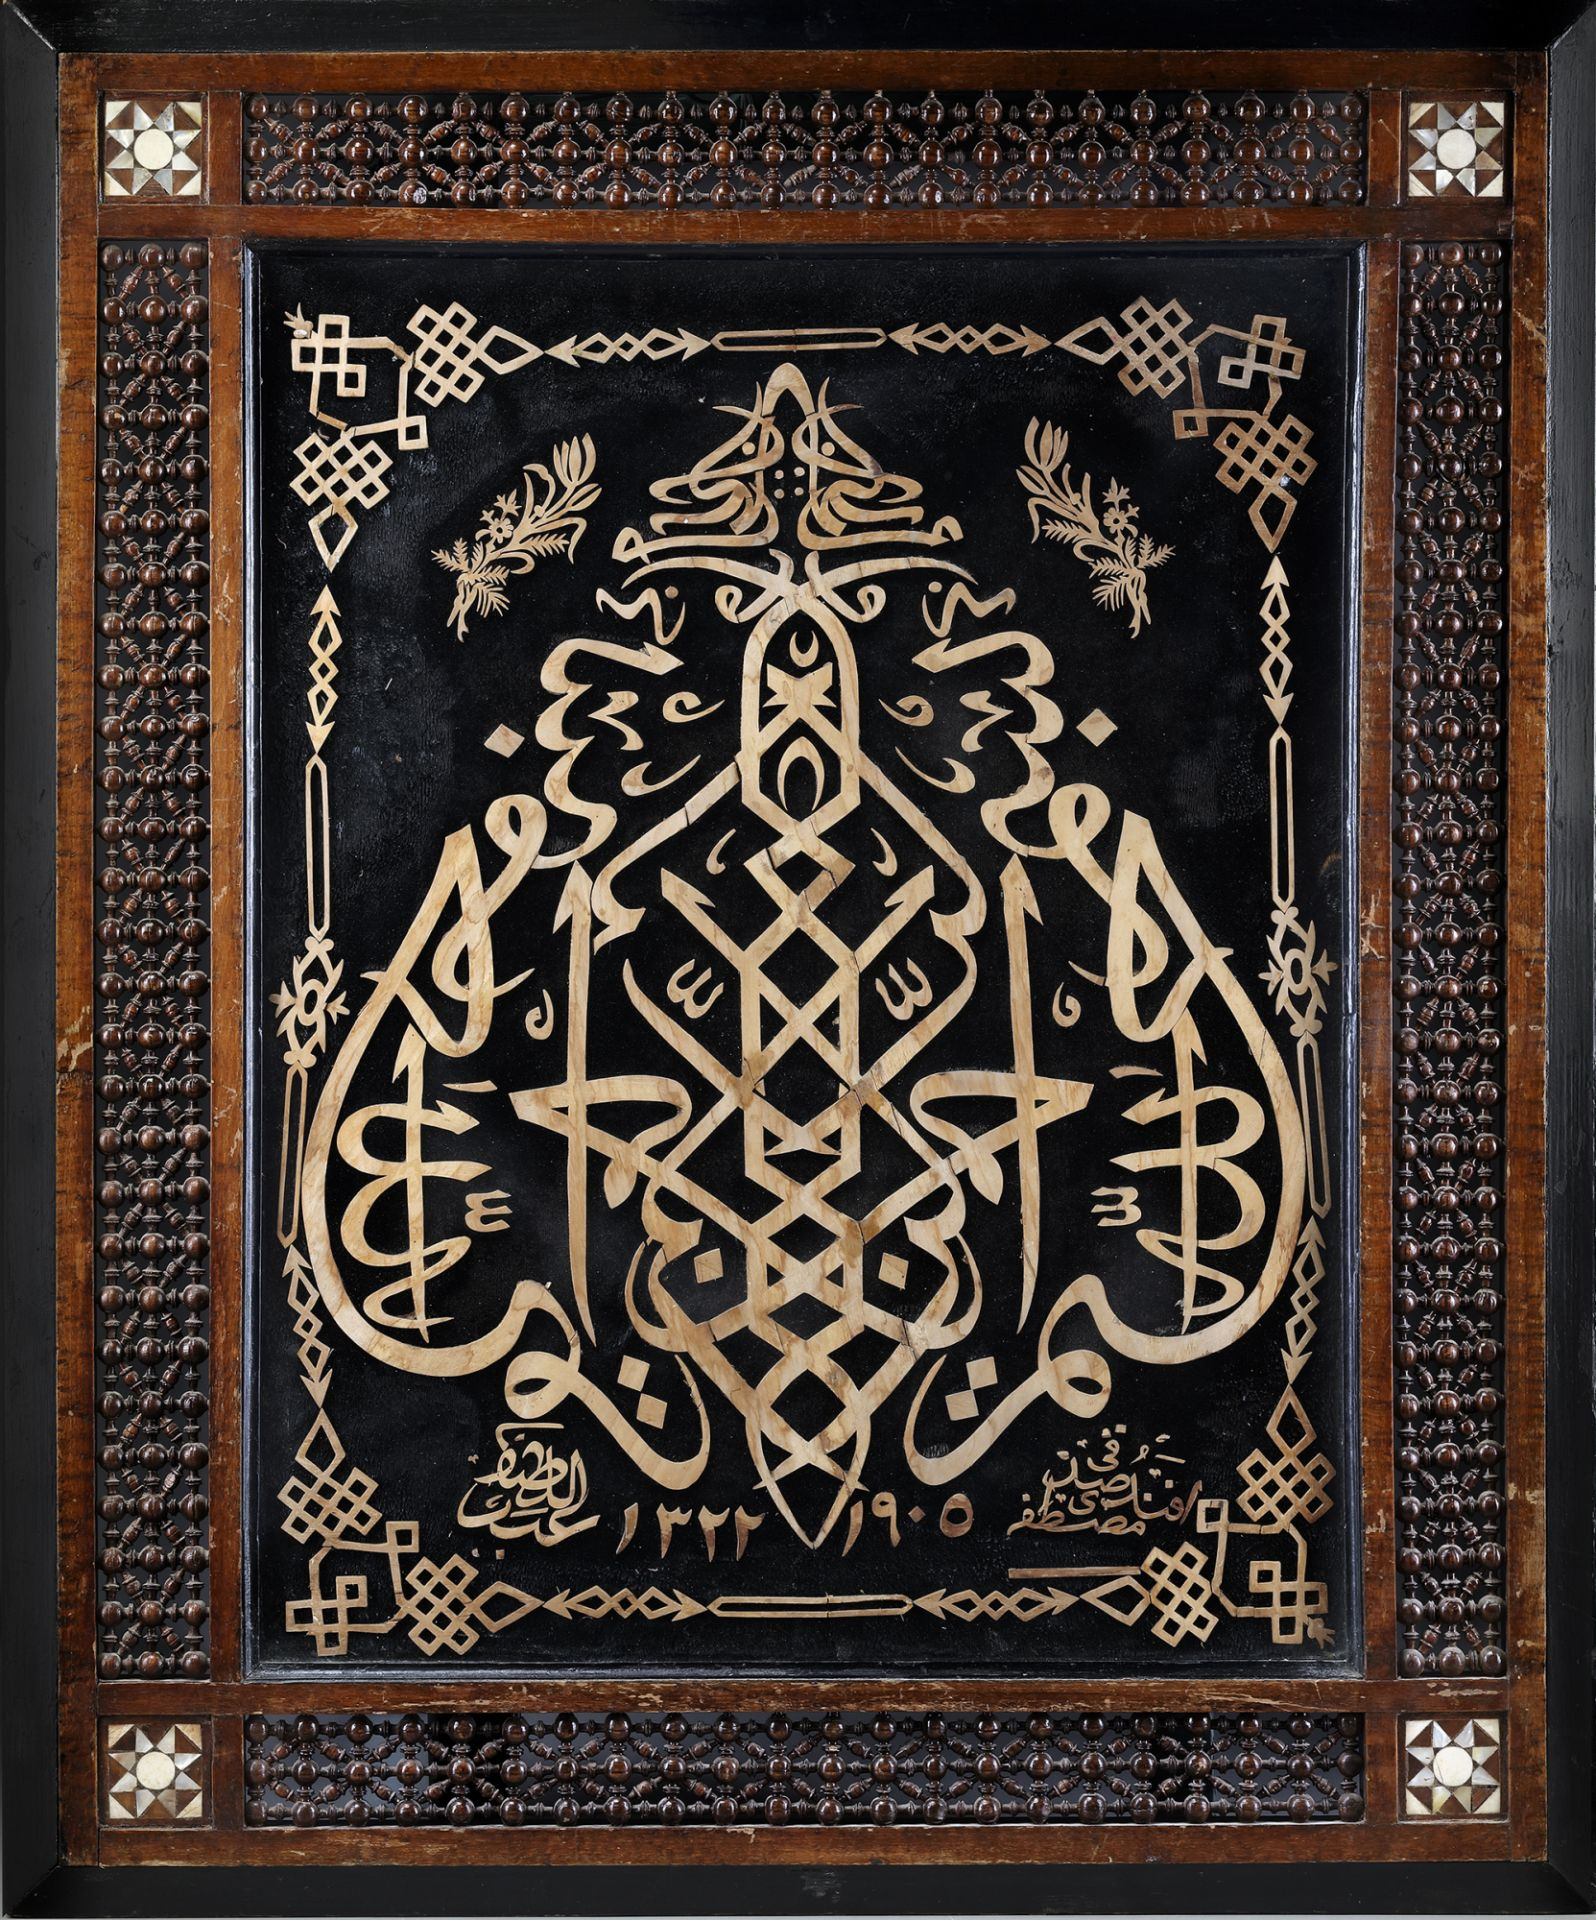 A SYRIAN OR EGYPTIAN FRAMED WOODEN CALLIGRAPHY CARVING ( KATI)